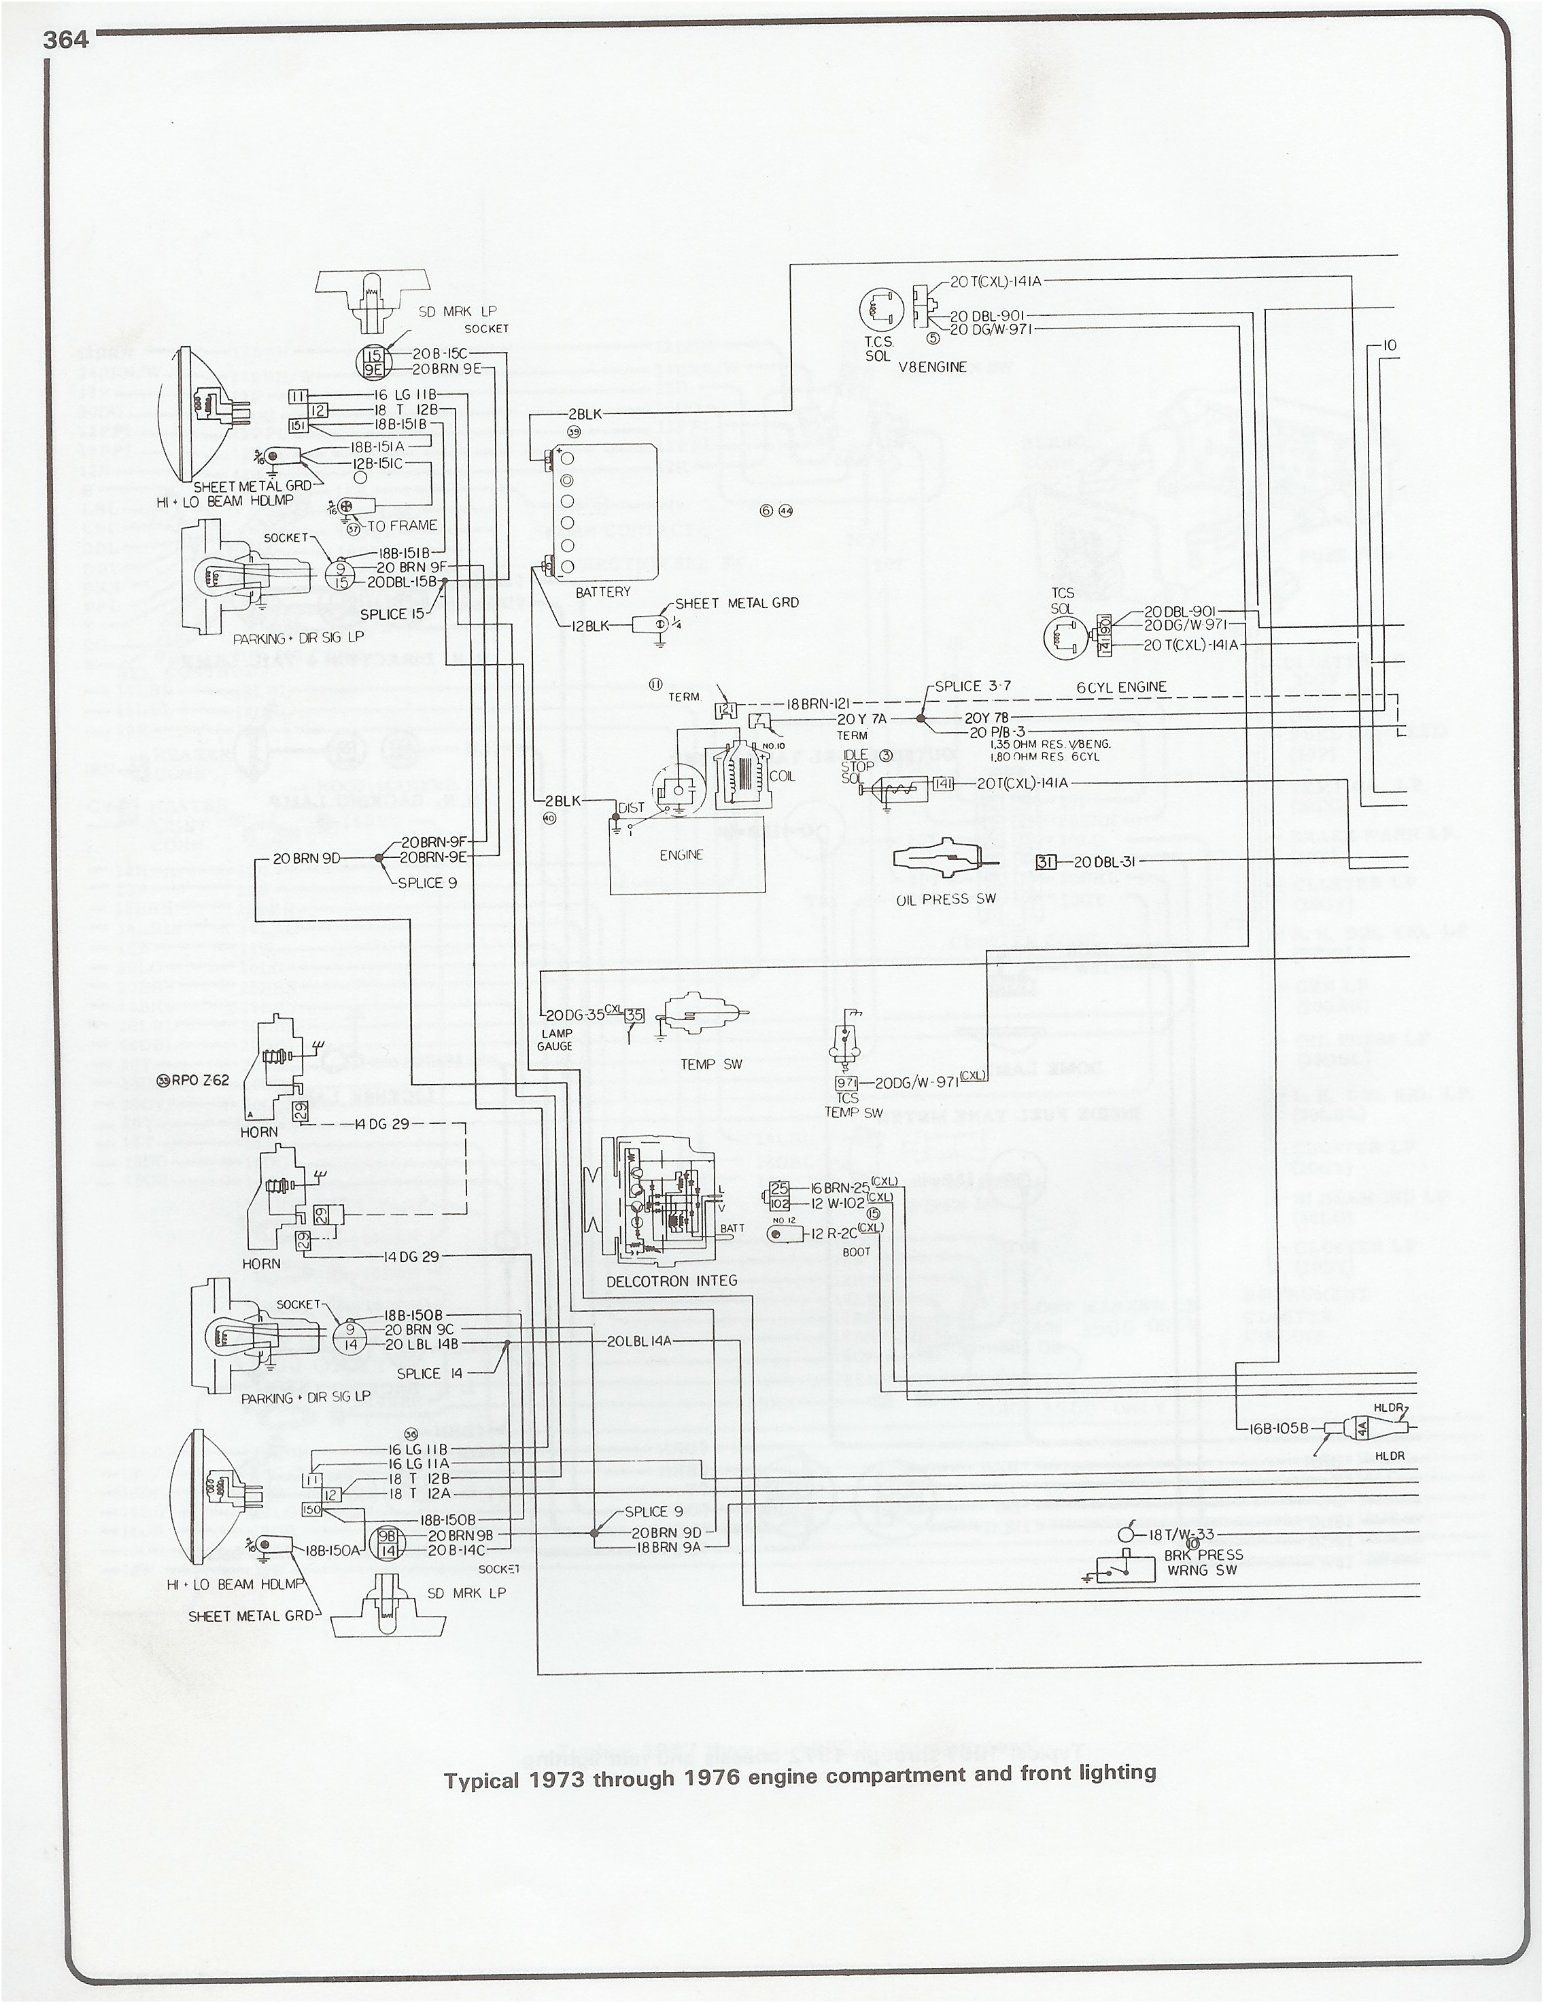 76 chevy fuse box diagram online wiring diagram73 camaro heater wiring diagram schematic diagram73 corvette ac wiring diagram wiring diagram blog data 76